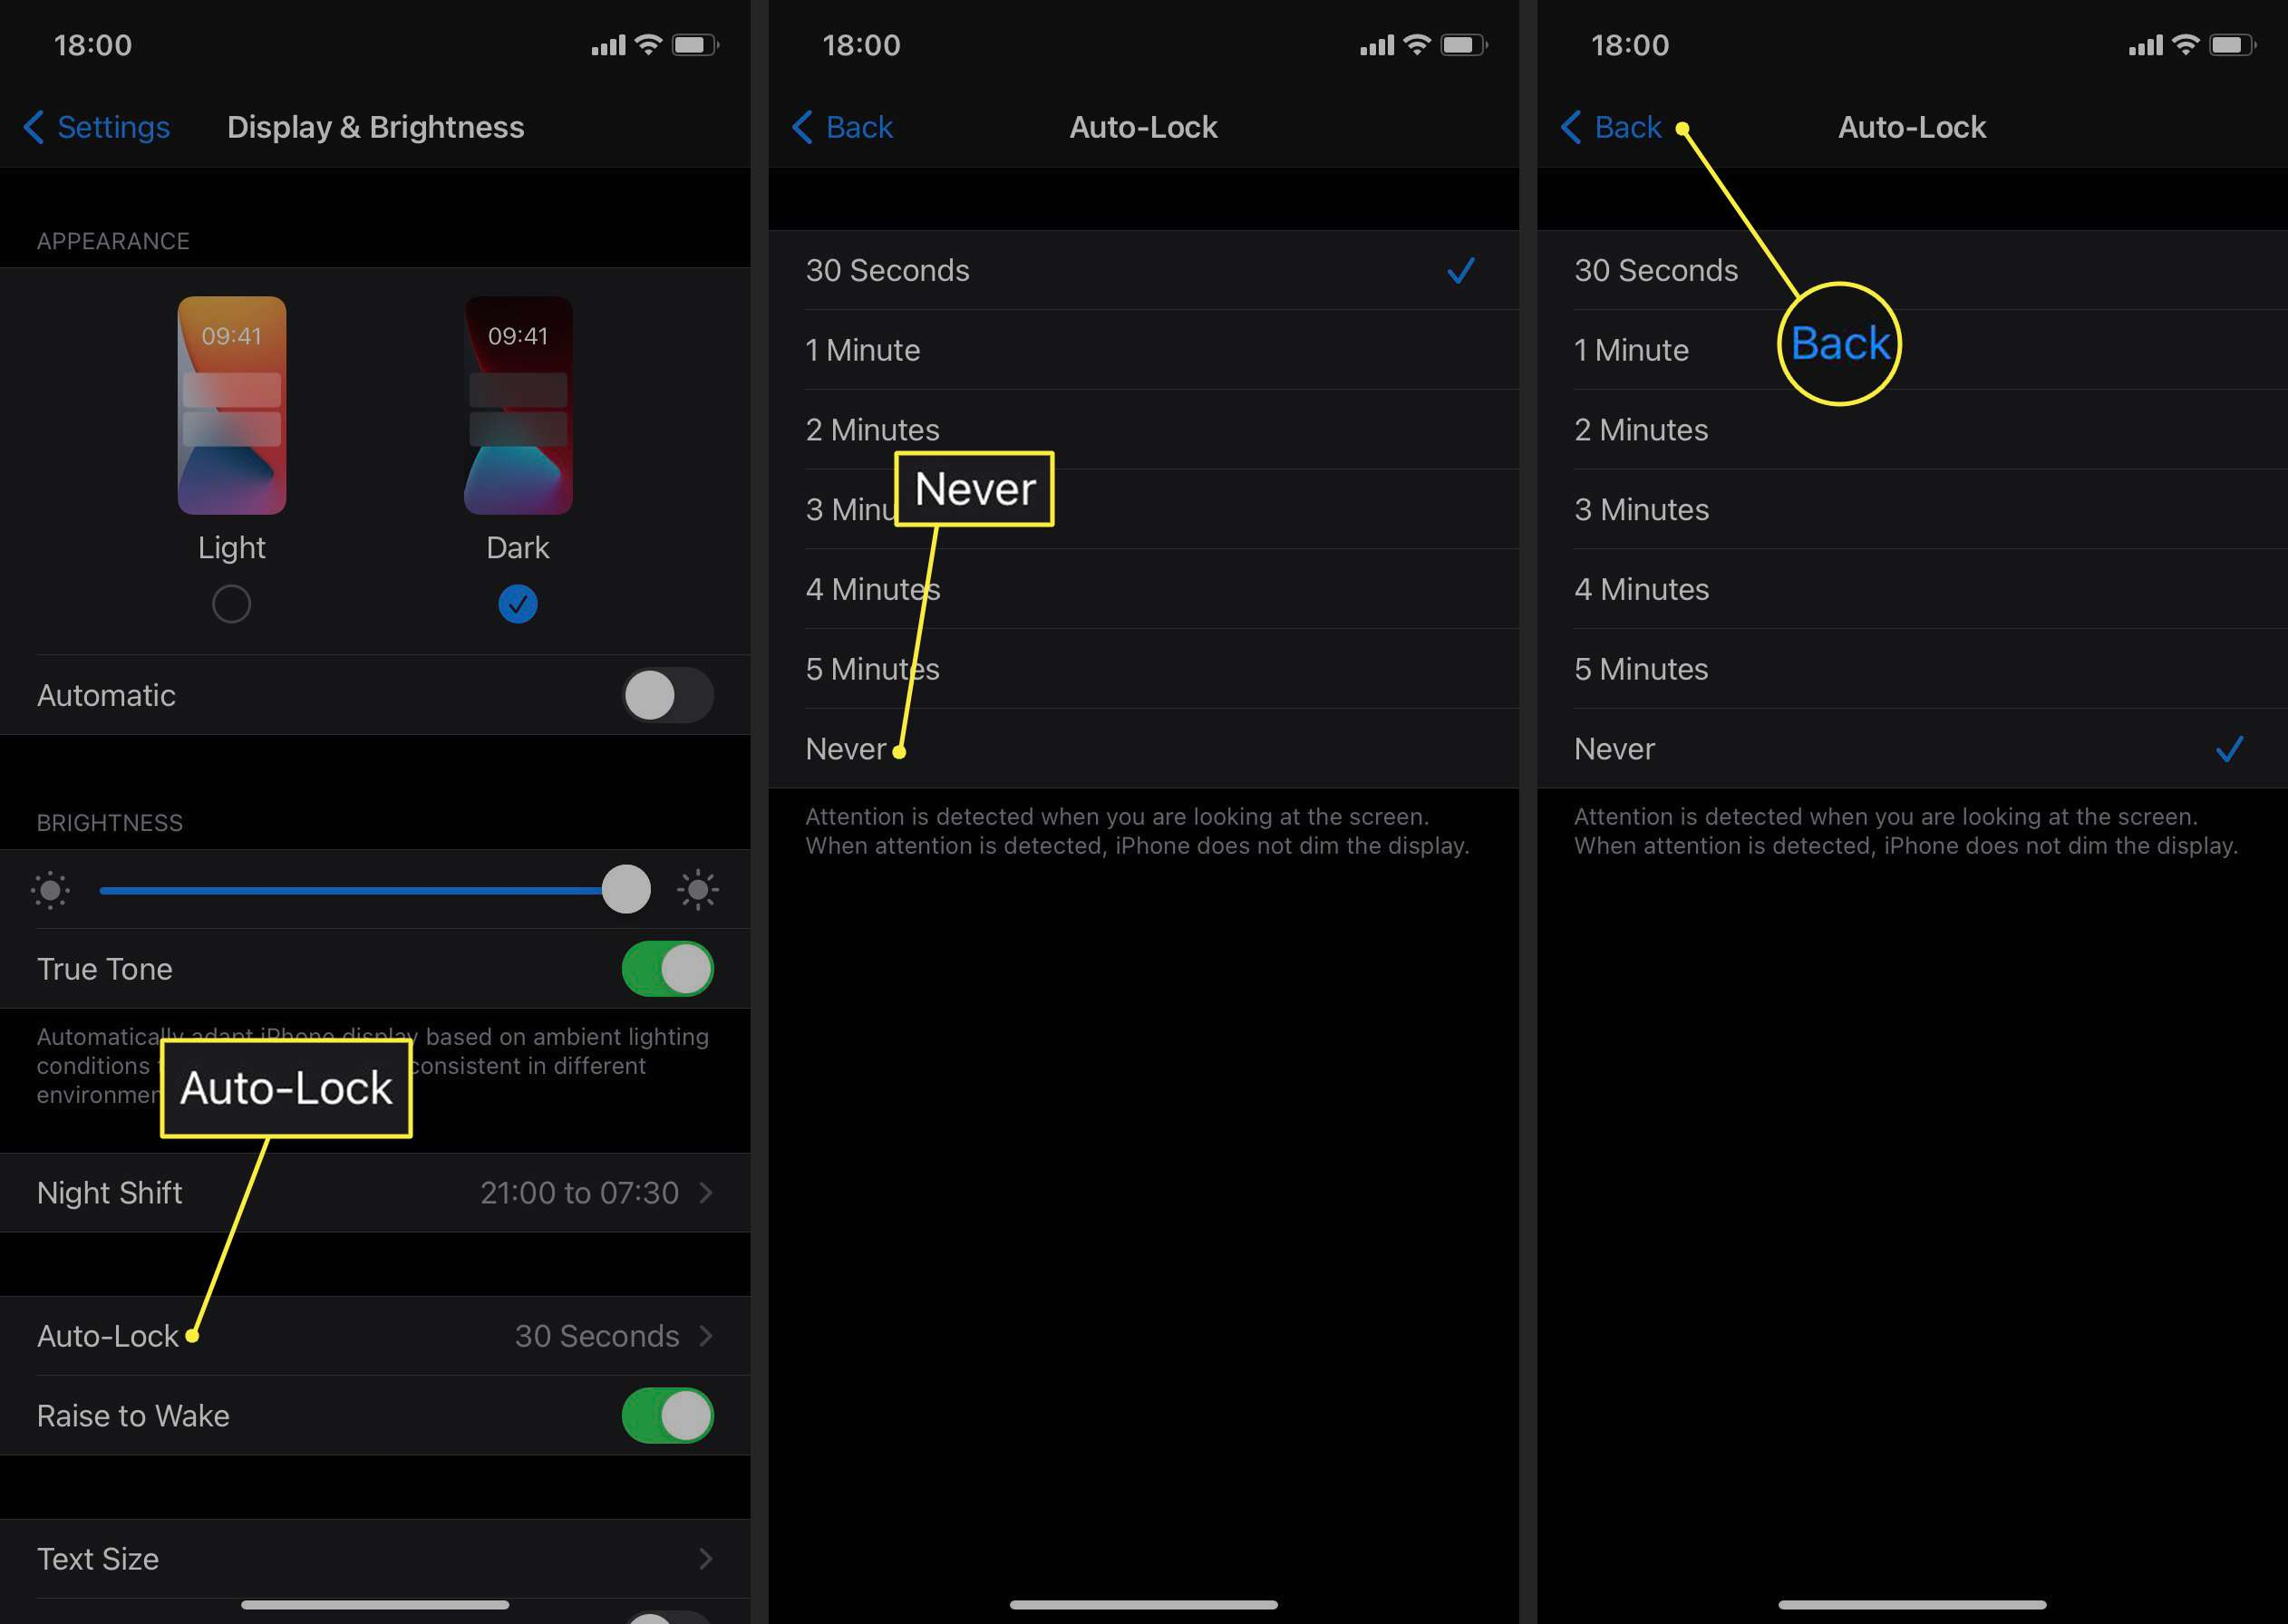 Auto-Lock, Never, and Back highlighted in iPhone settings